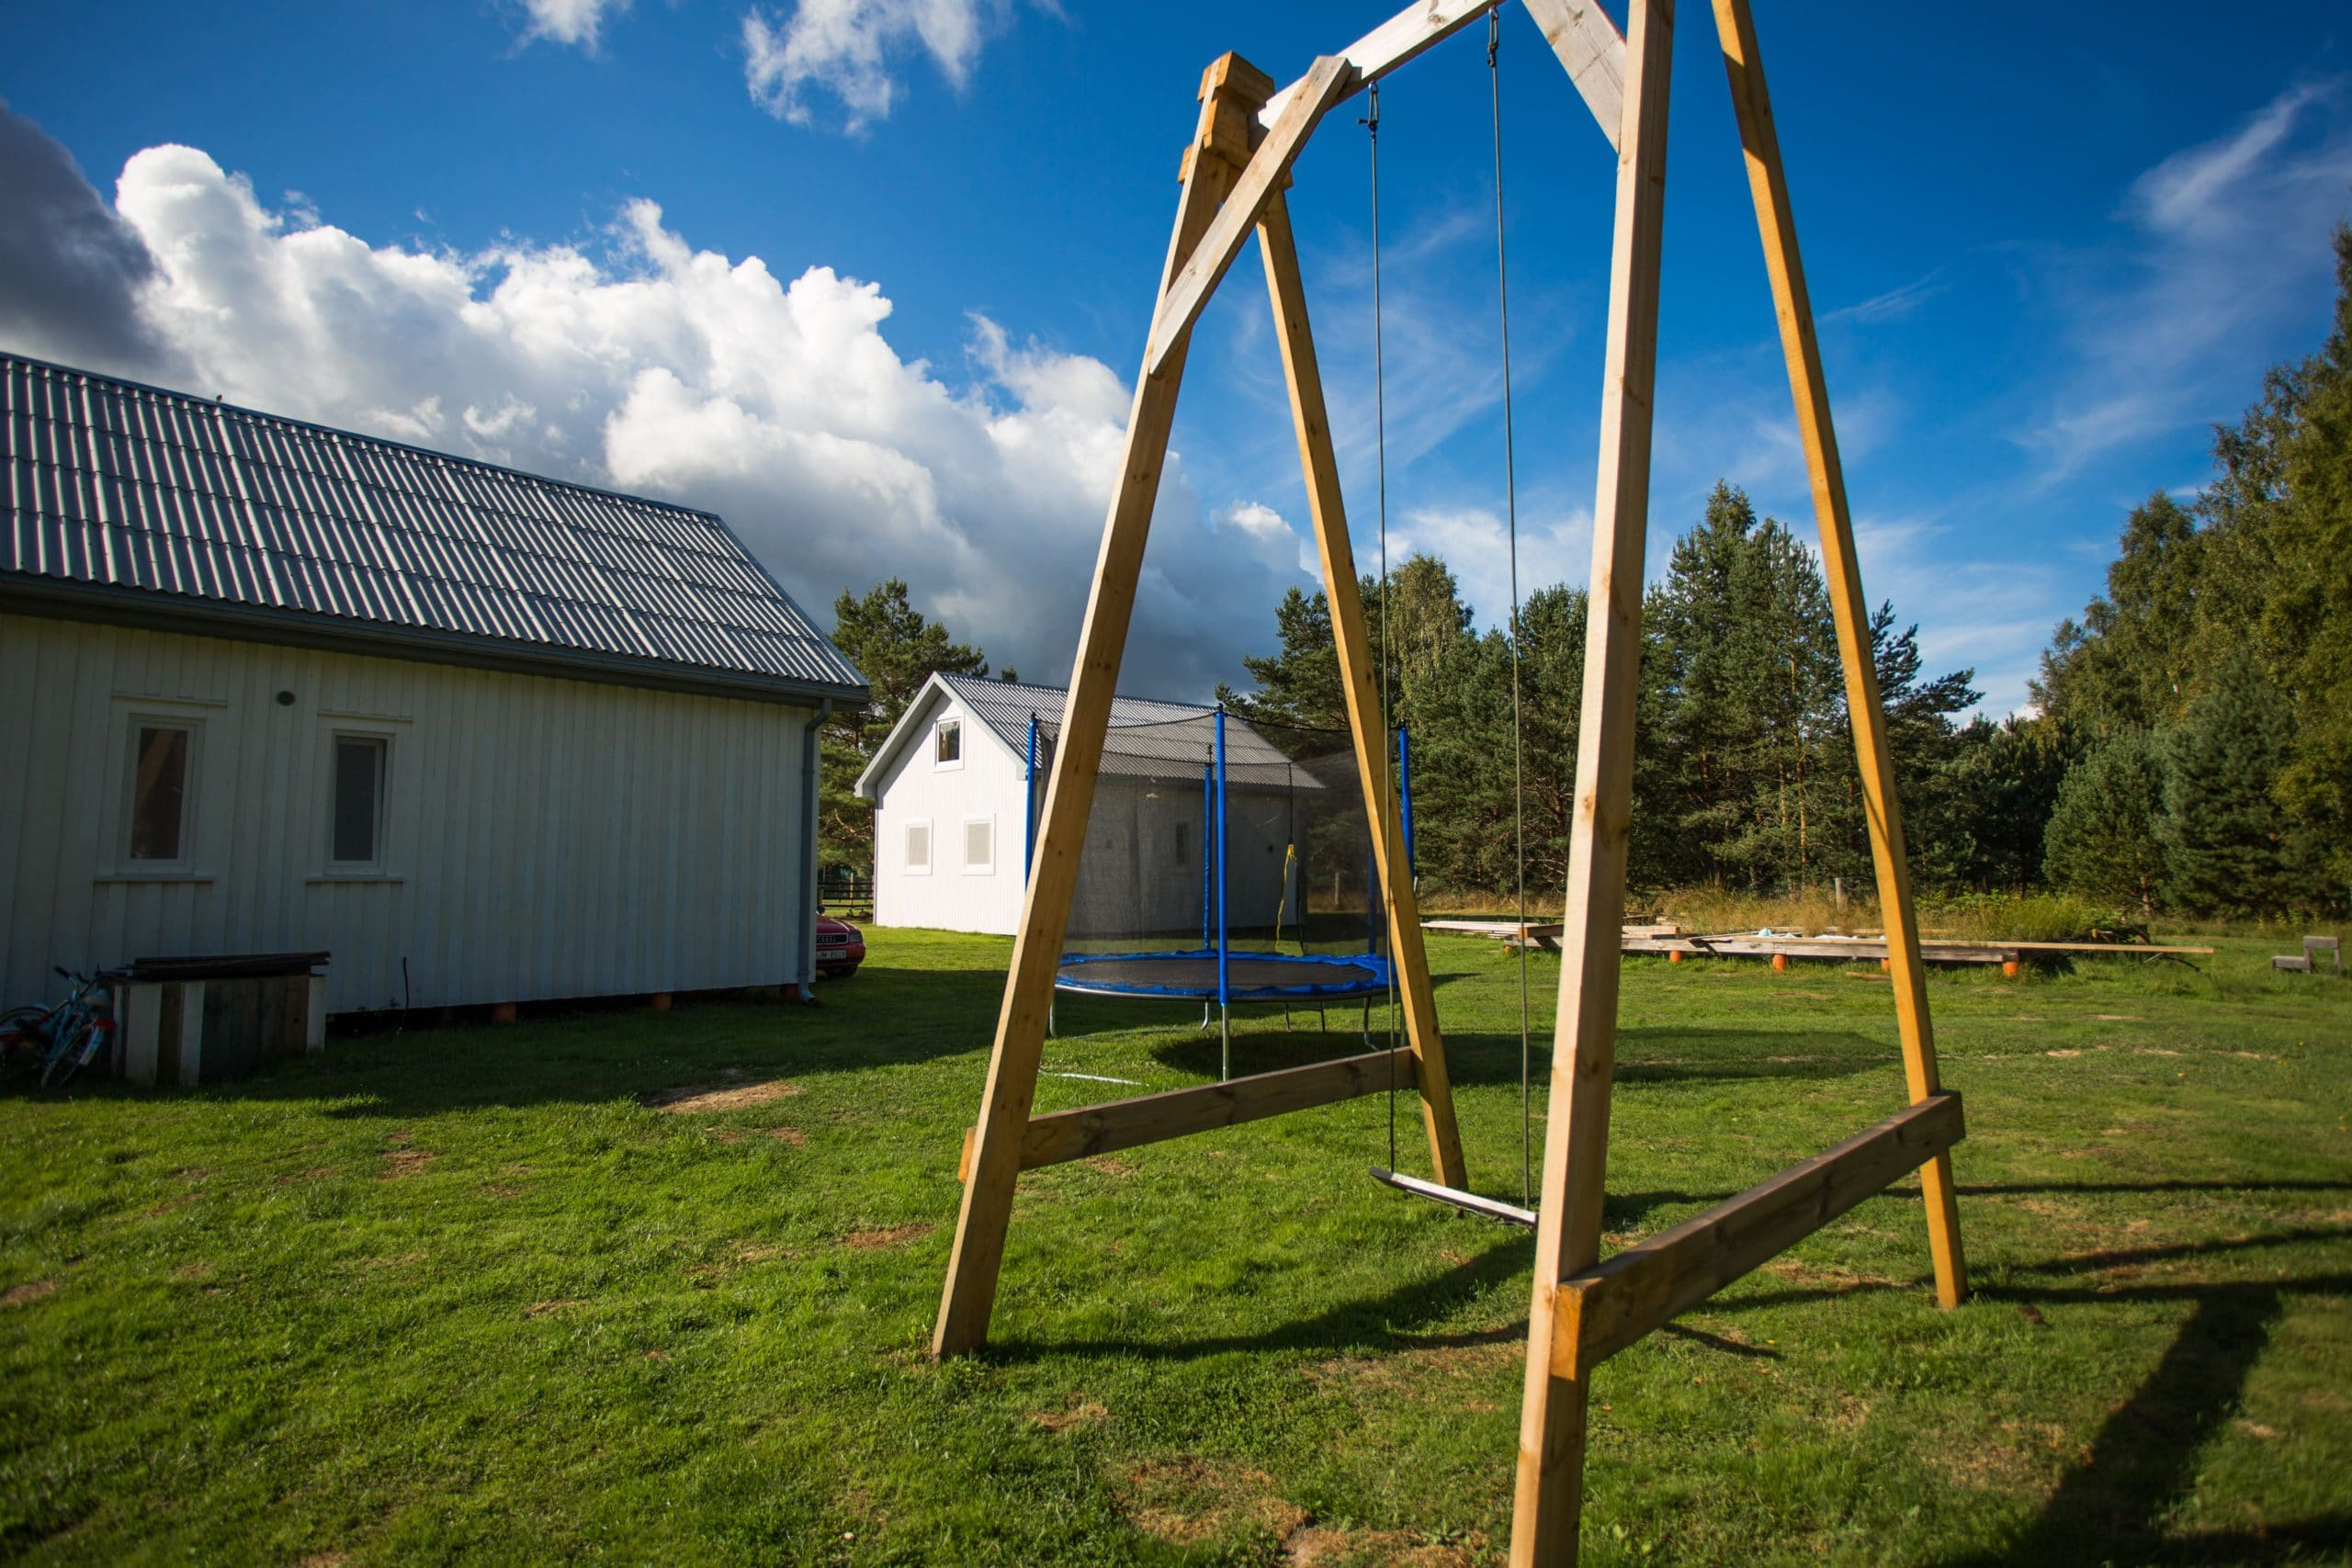 Holiday home playground swings